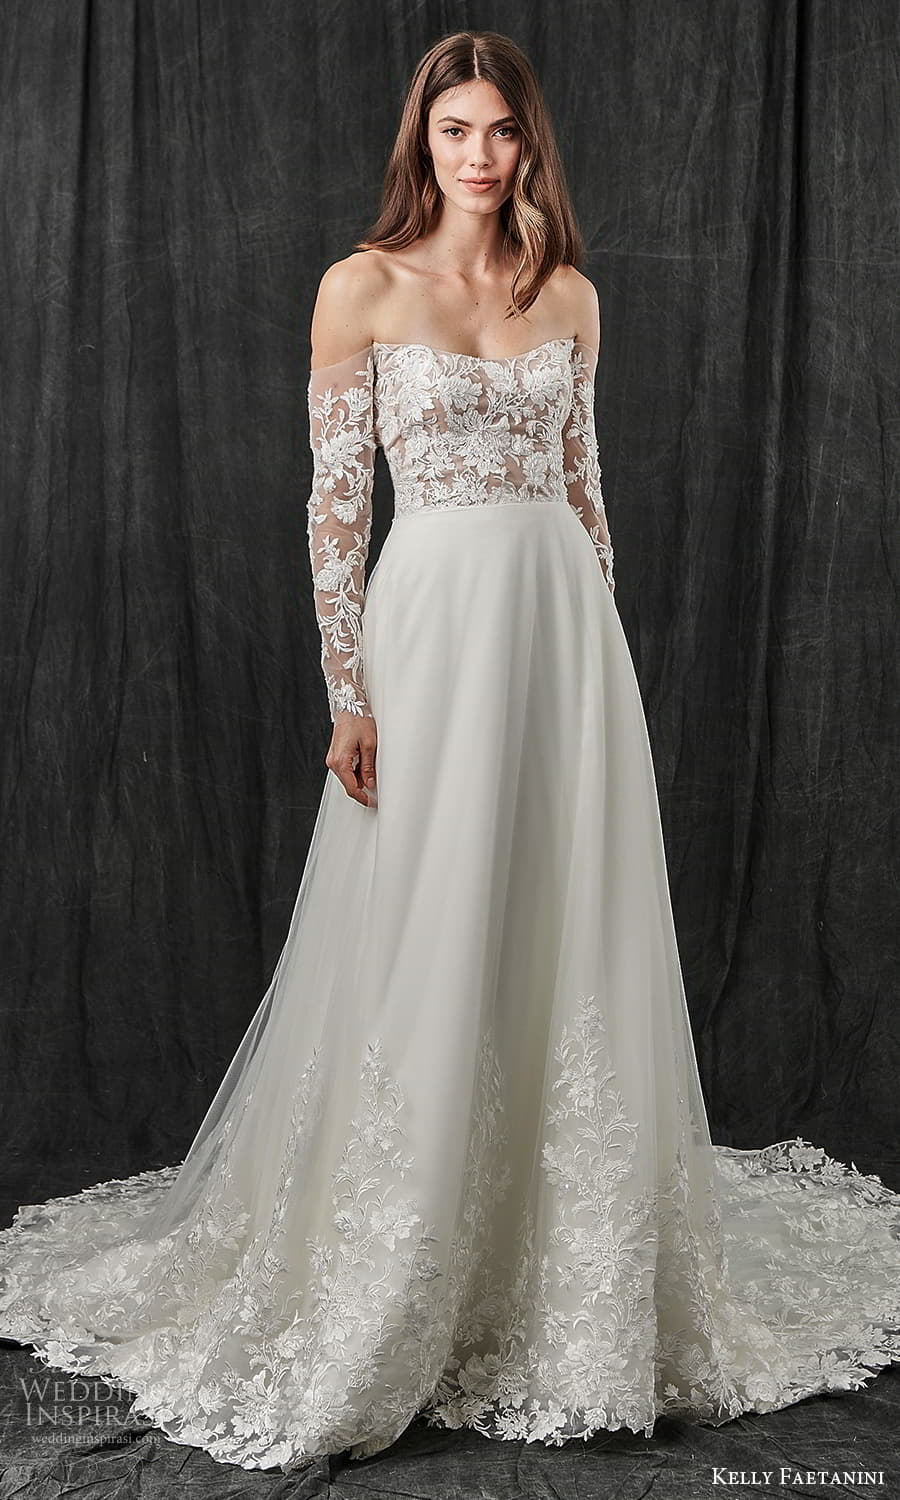 kelly faetanini spring 2022 bridal sheer detached long sleeves curved neckling embellished lace bodice clean skirt a line weding dress chapel train (16) mv